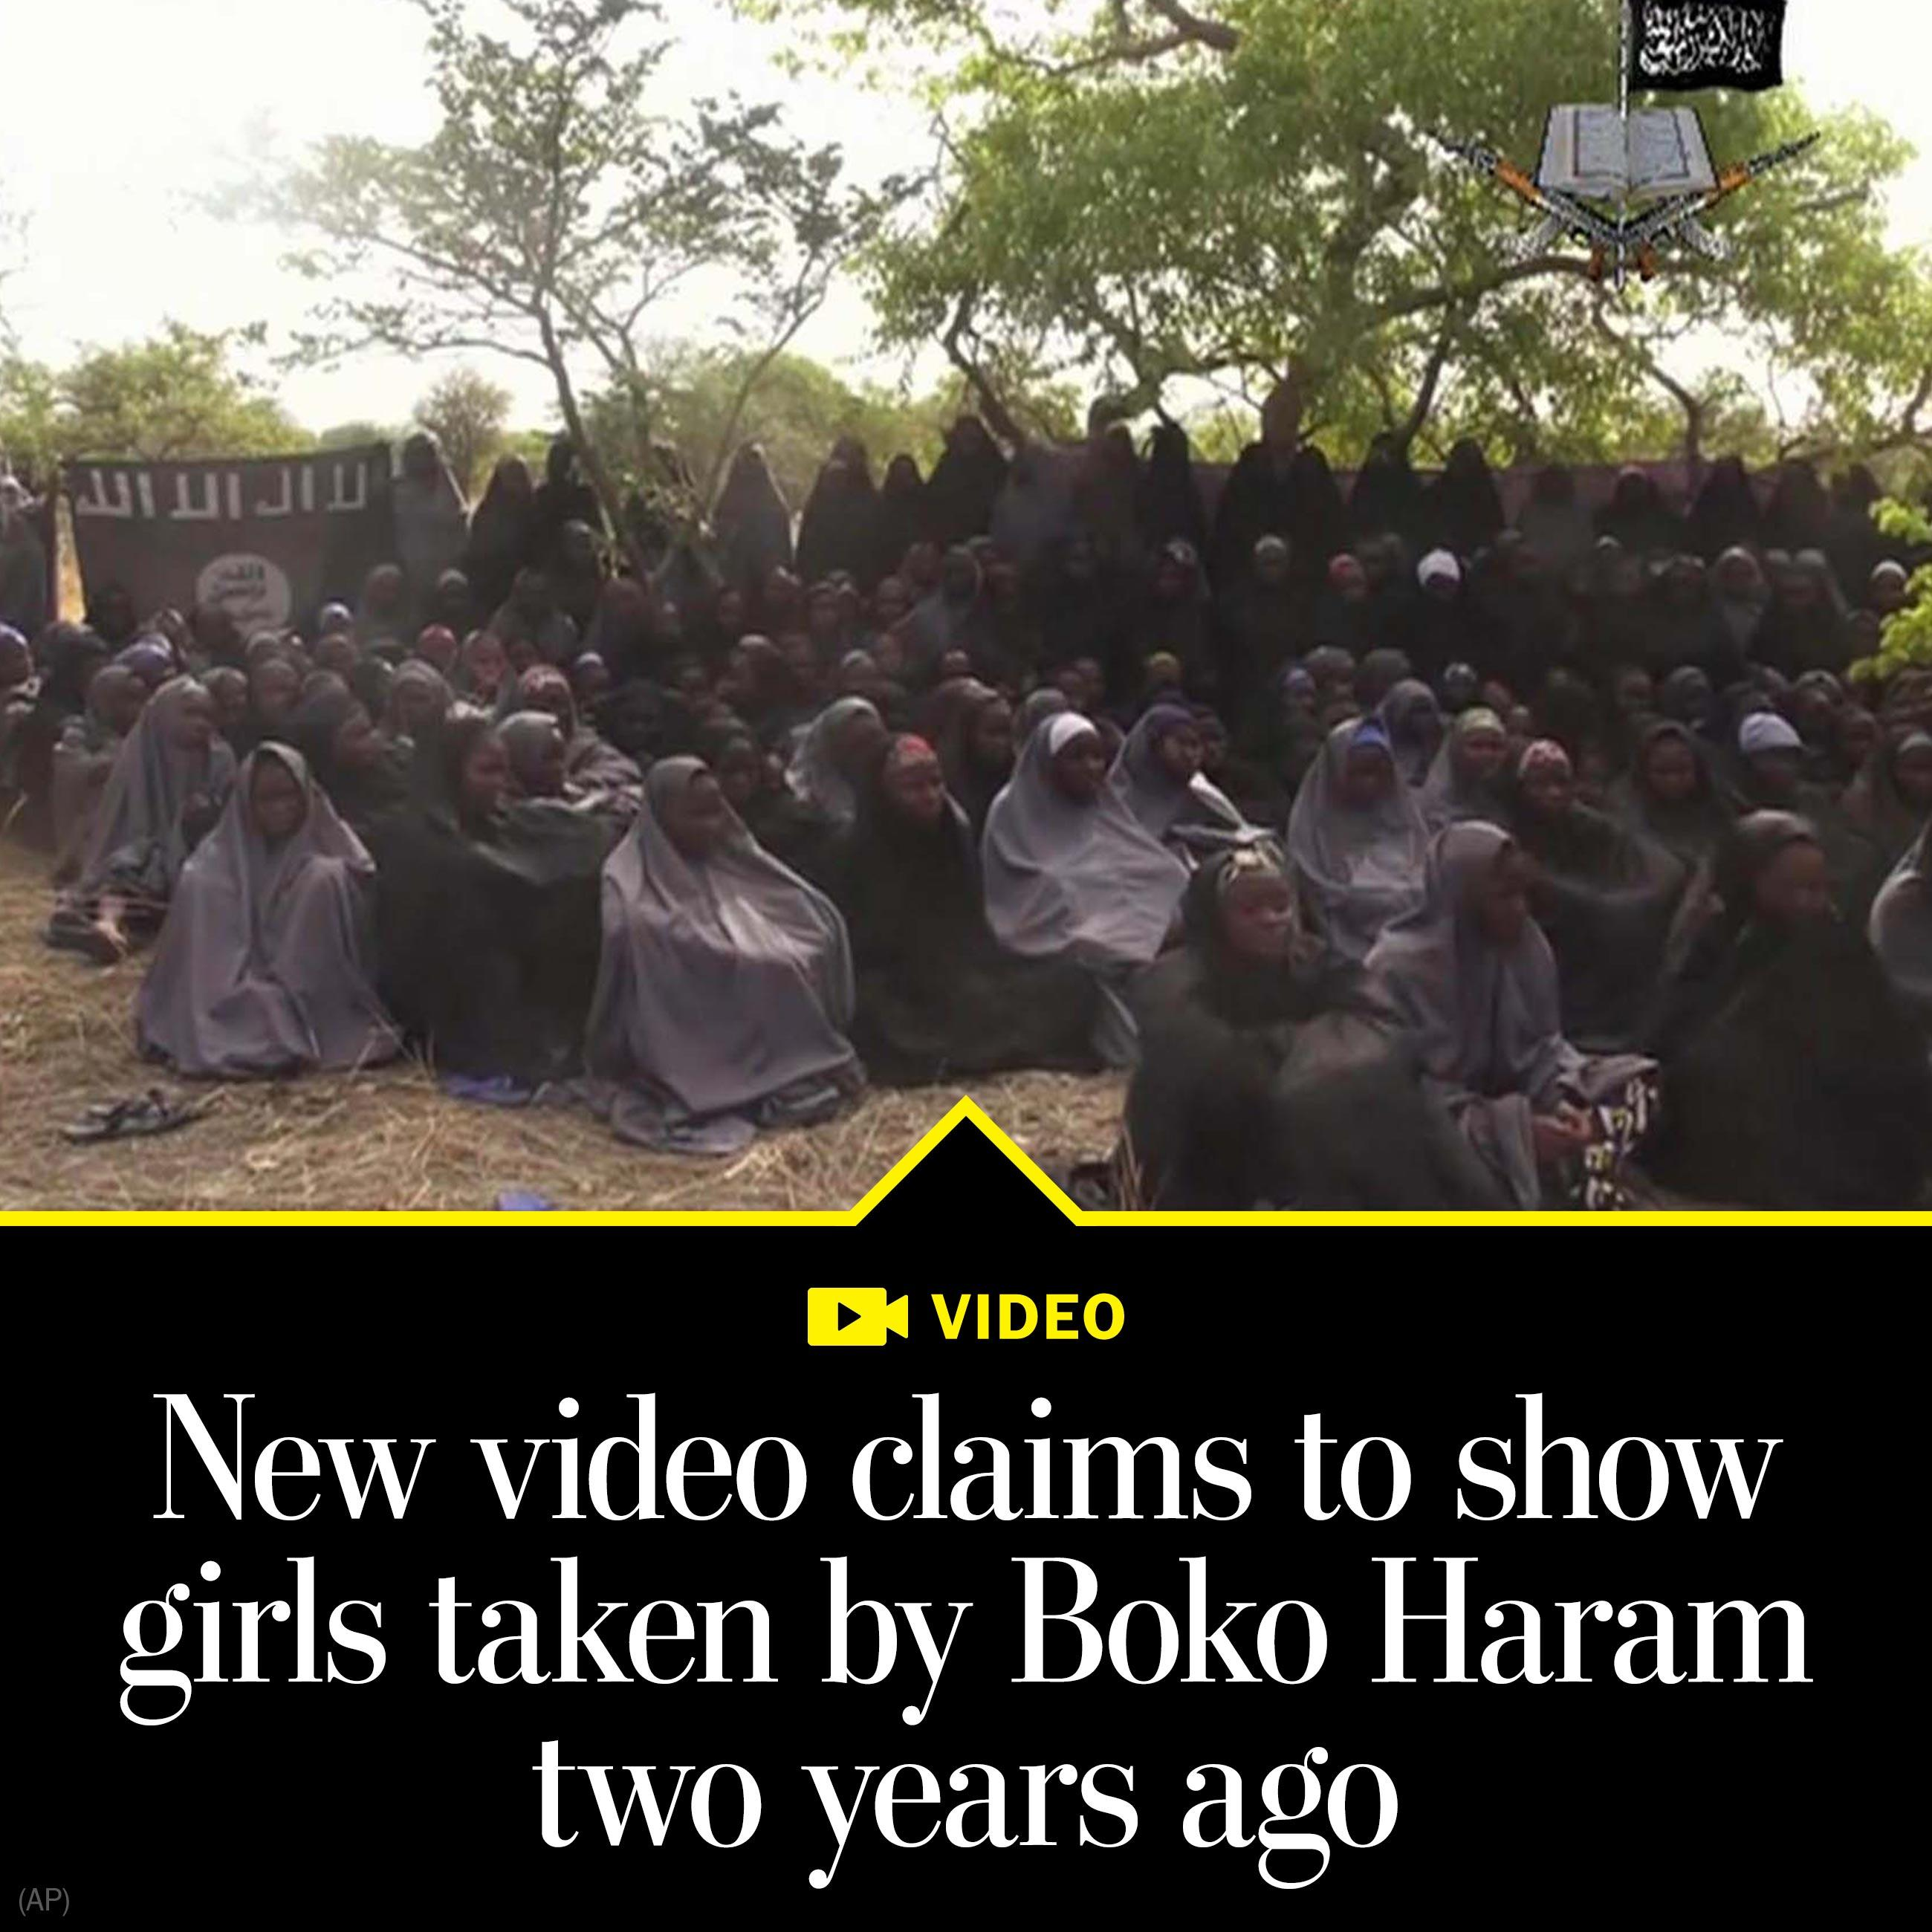 Video claims to show Nigerian girls kidnapped by militants two years ago